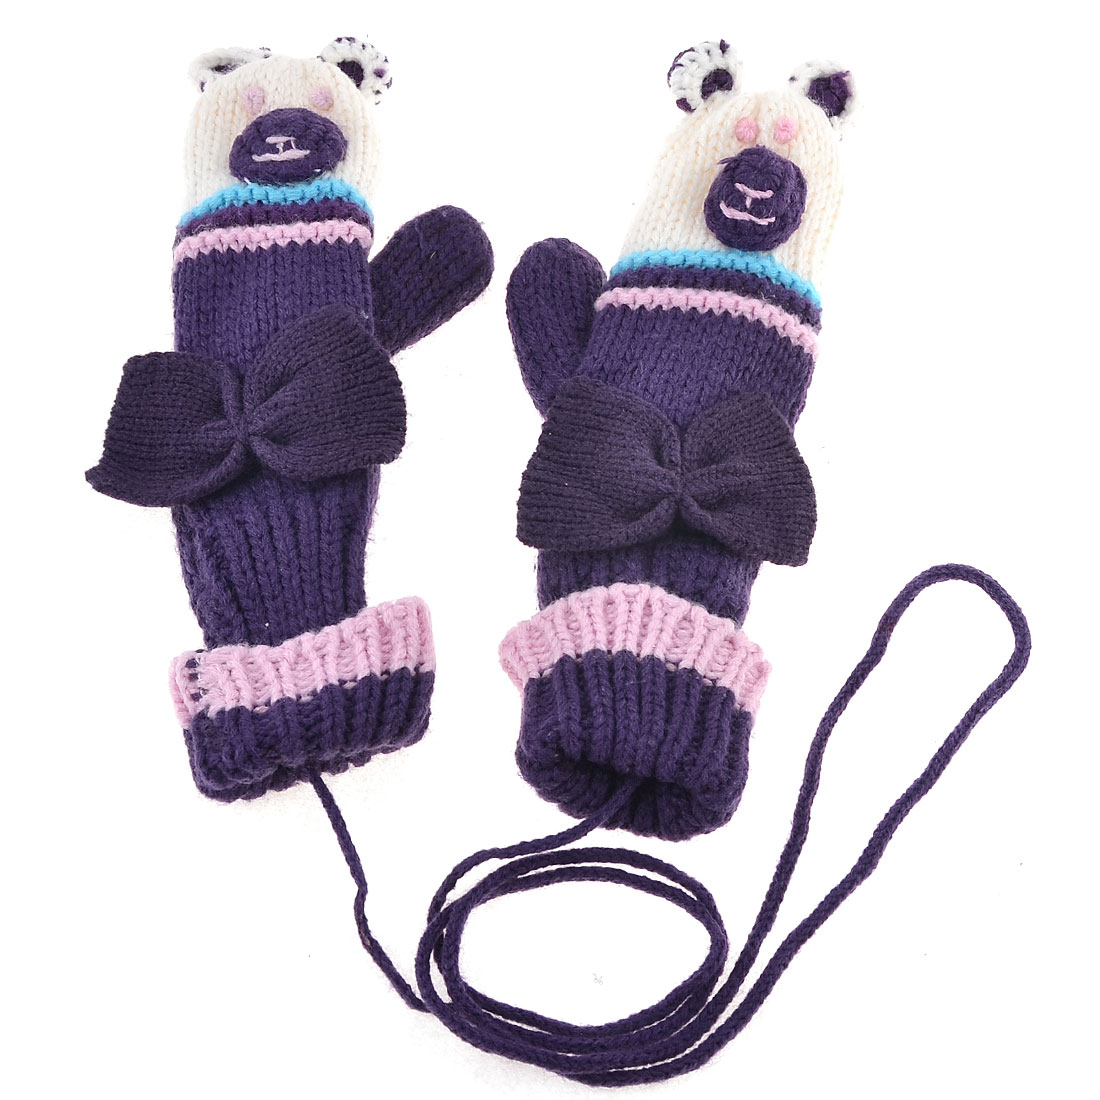 Lady Bowknot Detail Knitted Warm Hang Neck Mitten Gloves Purple Pair